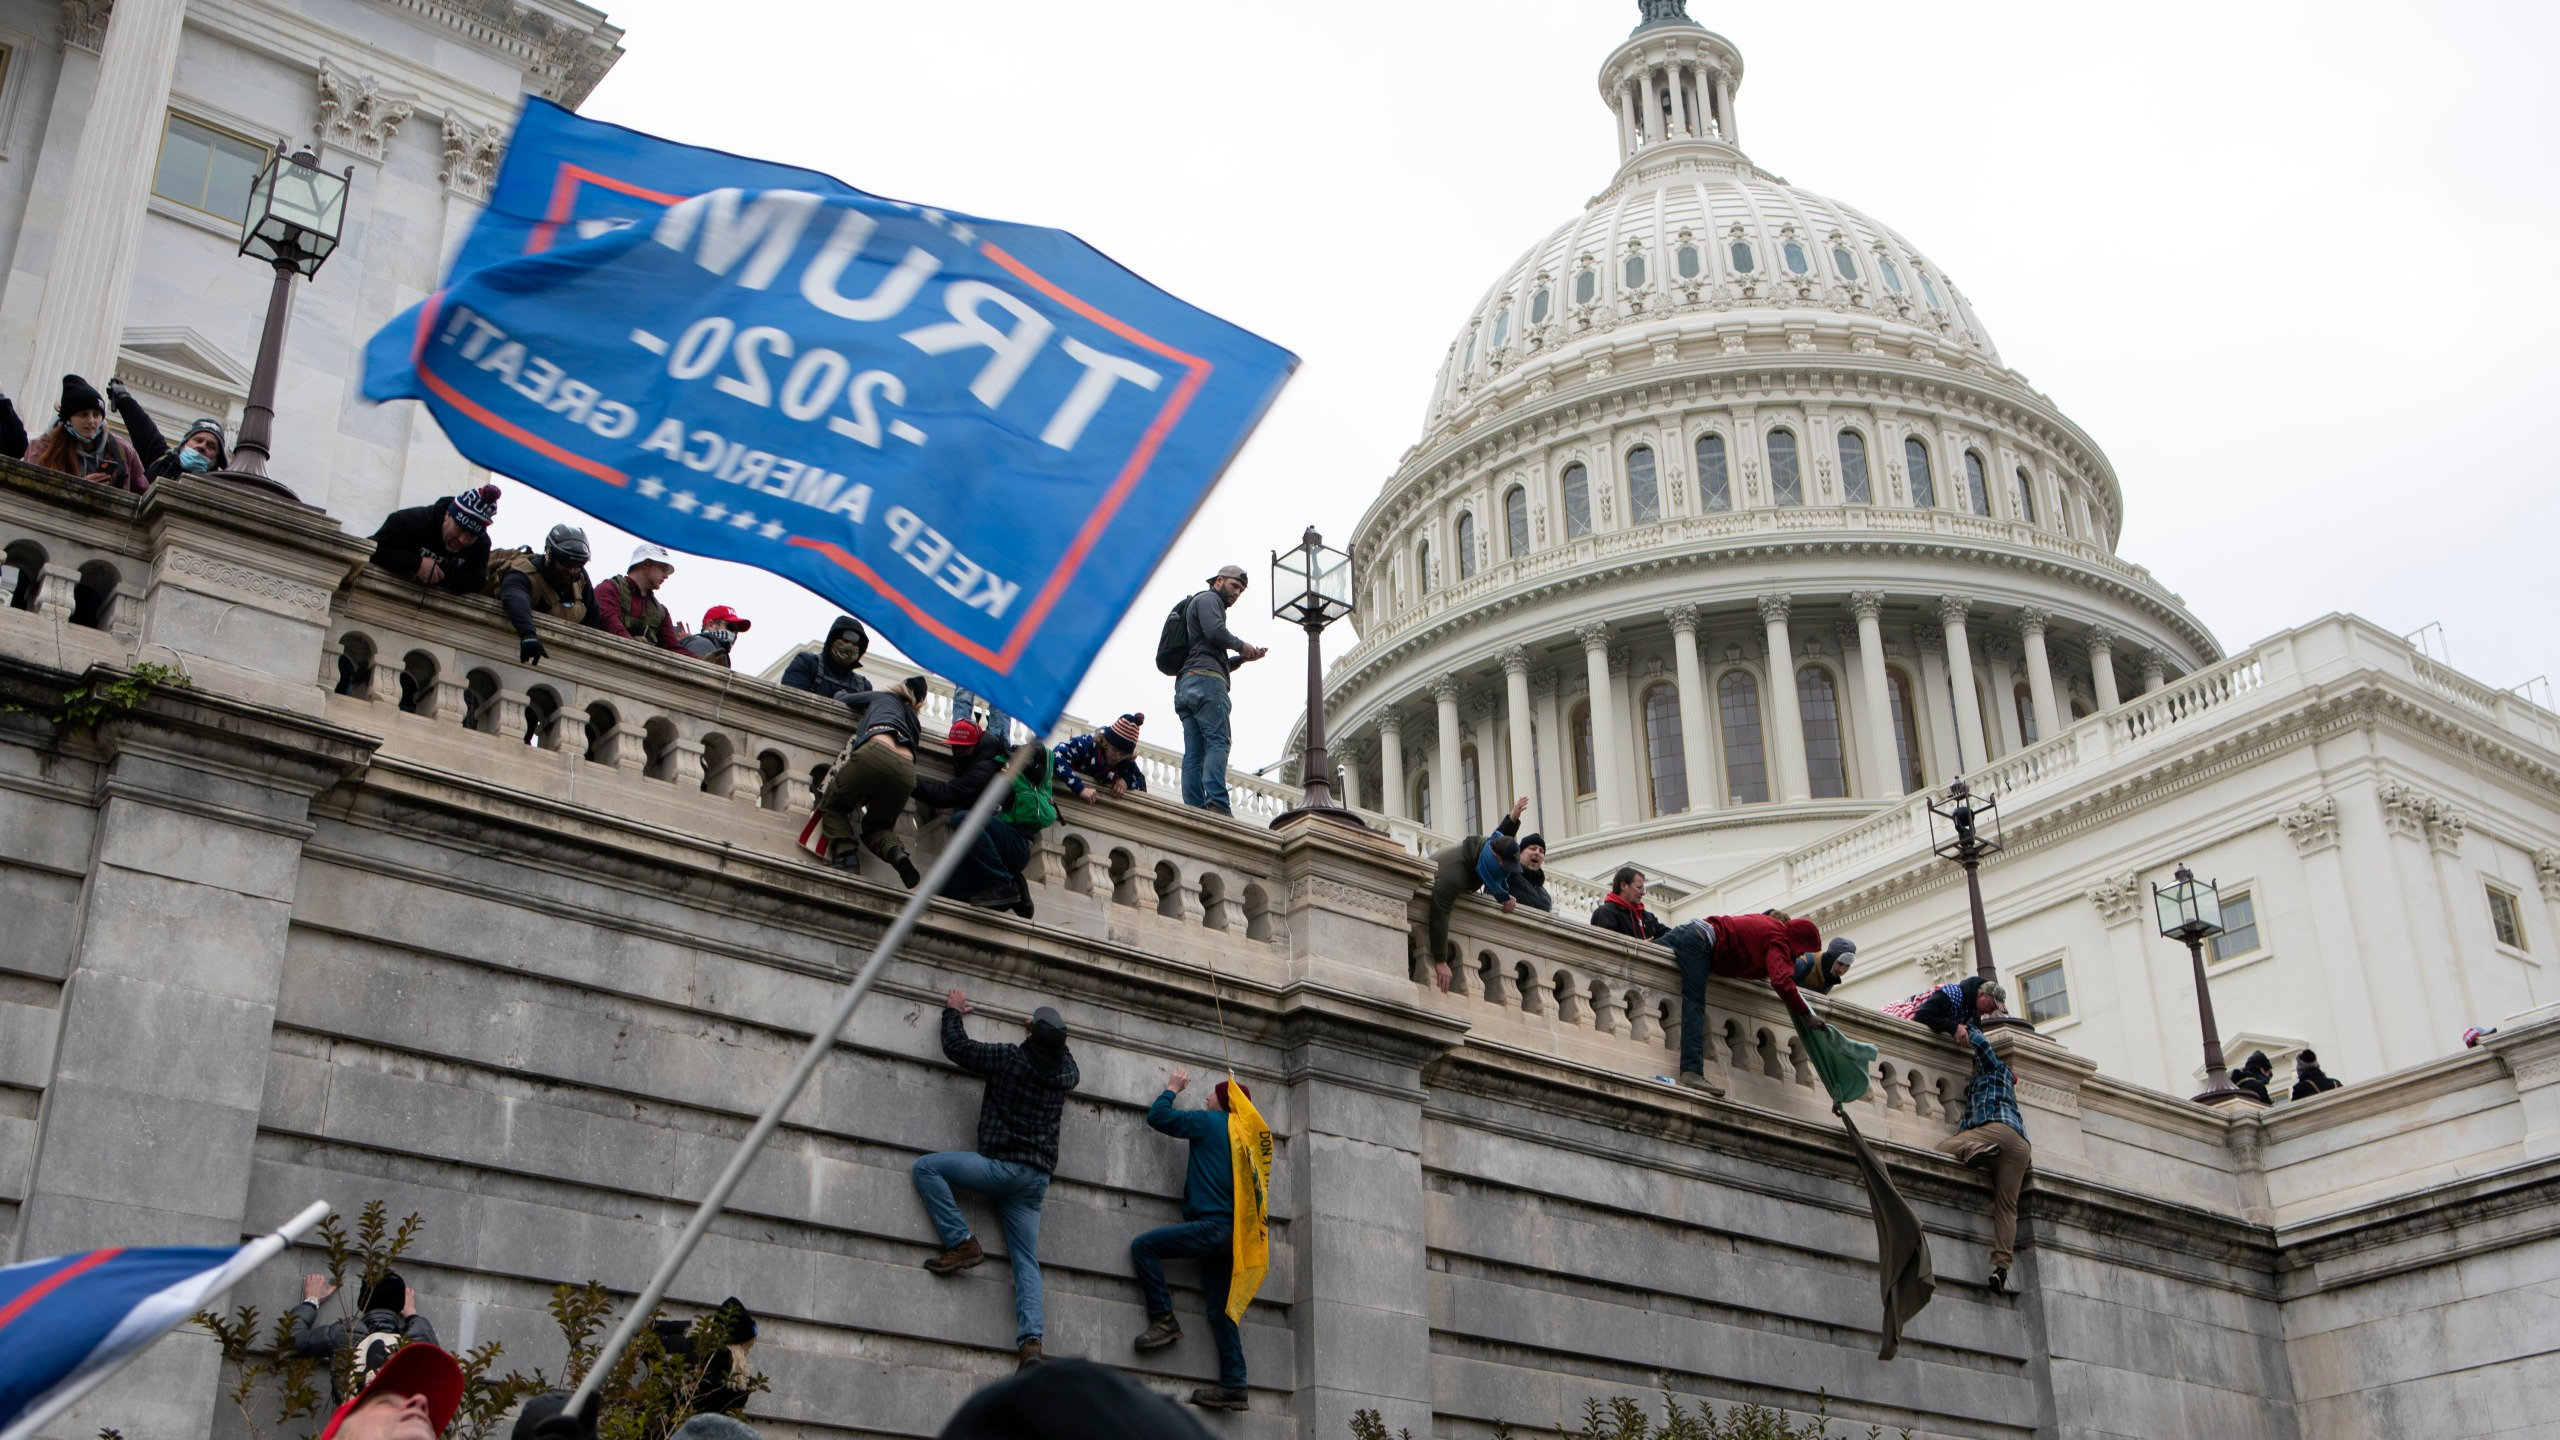 FILE - In this Jan. 6, 2021 file photo, violent insurrectionists loyal to President Donald Trump scale the west wall of the the U.S. Capitol in Washington. (AP Photo/Jose Luis Magana, File)